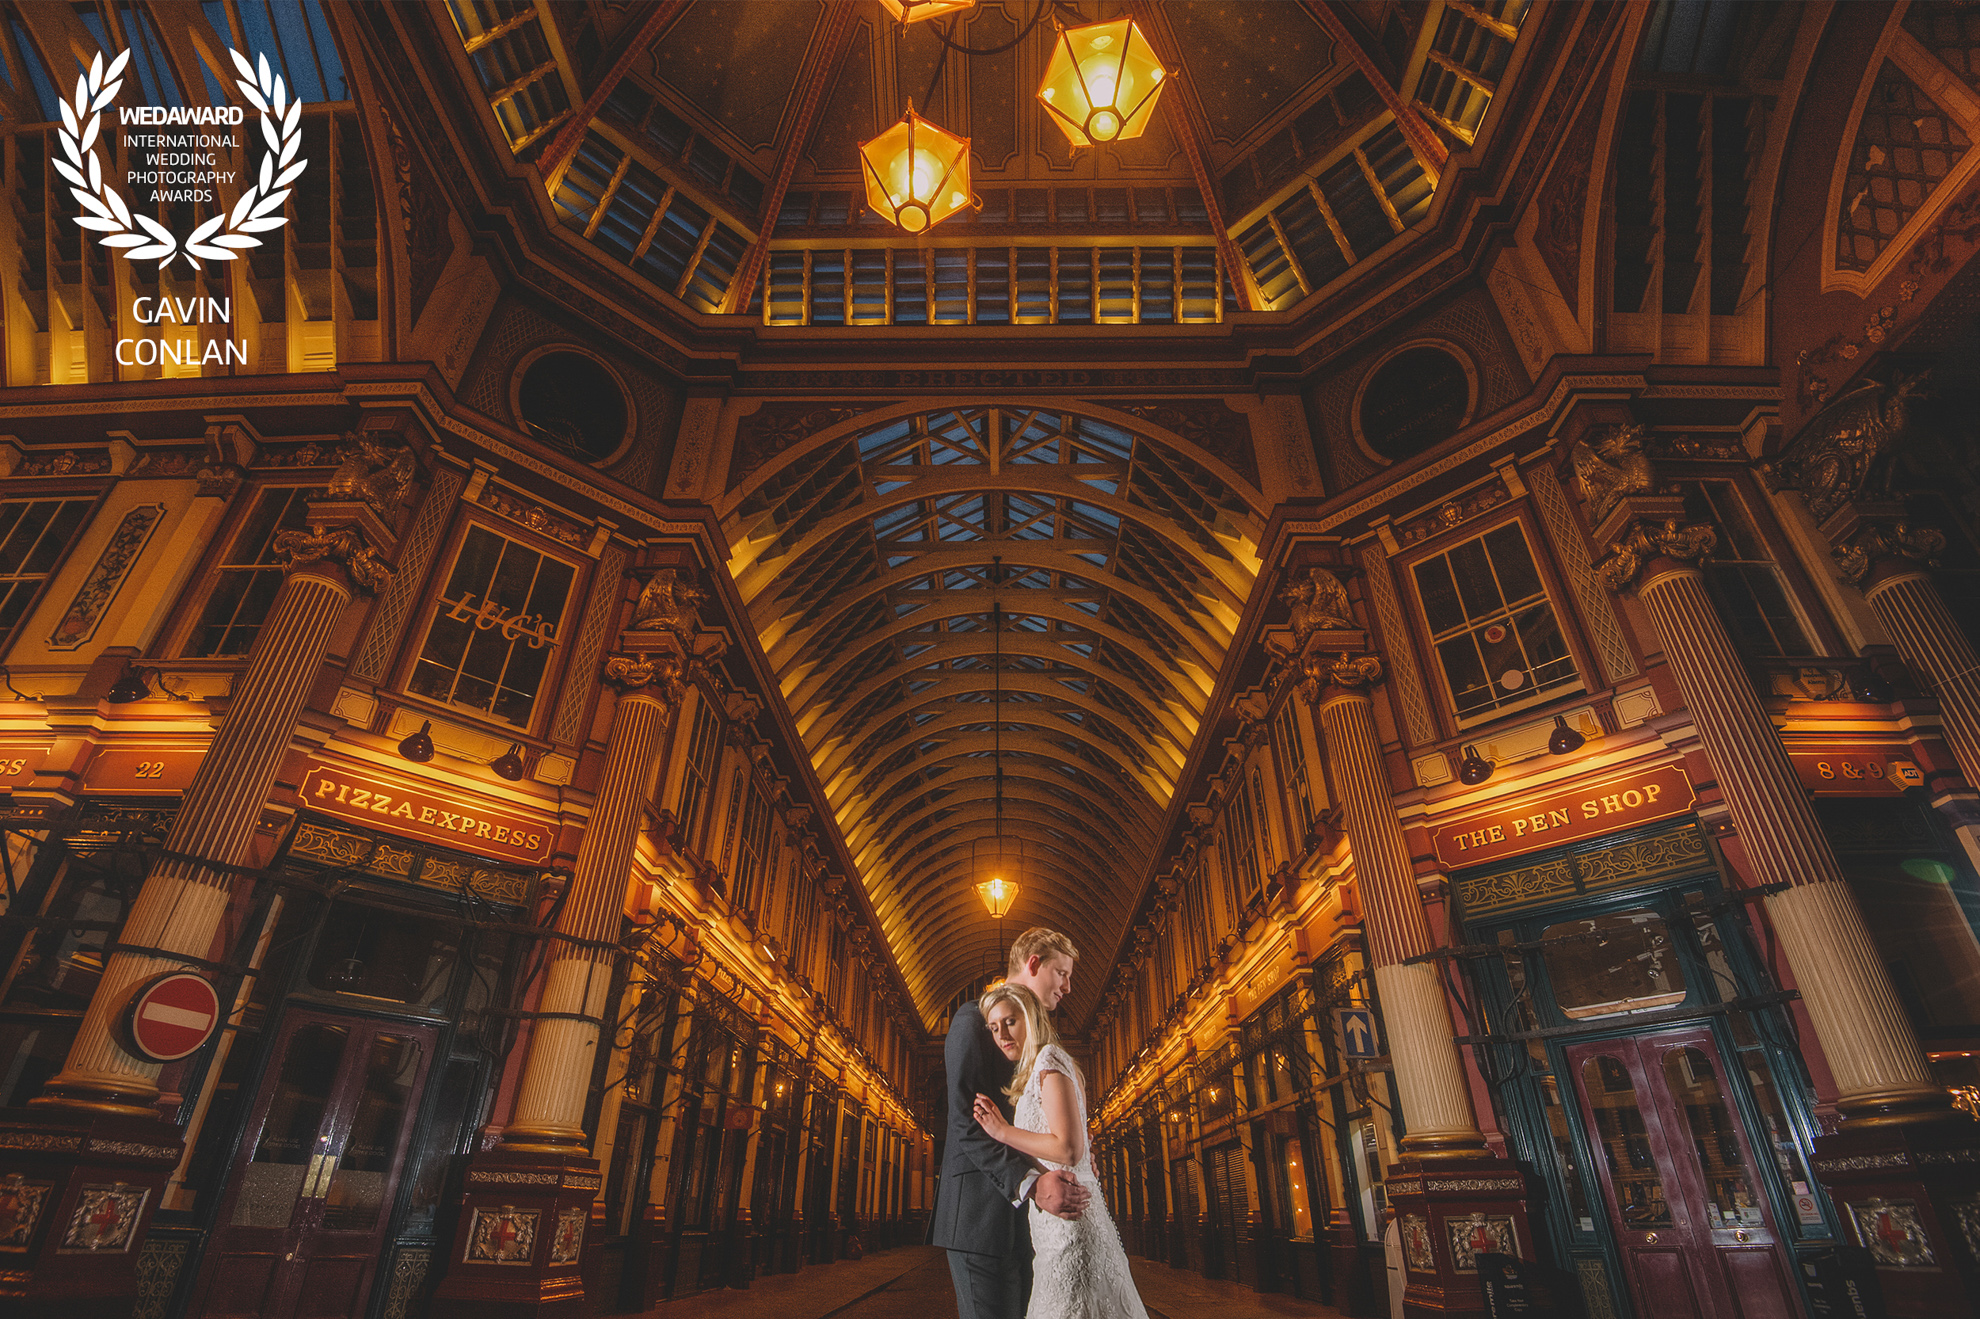 wedding-portrait-leadenhall-market-devonshire-terrace-london-gavin-conlan-photography-wedaward